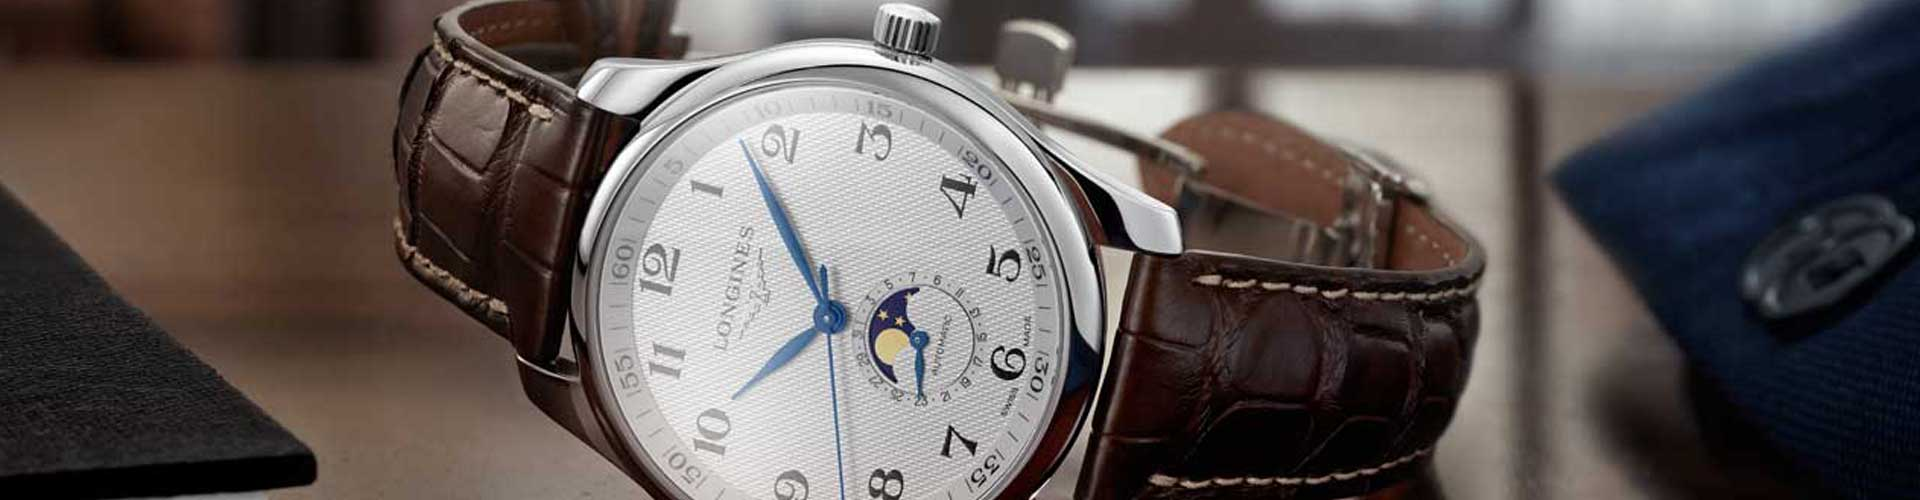 Longines Swiss Watchmakers since 1832